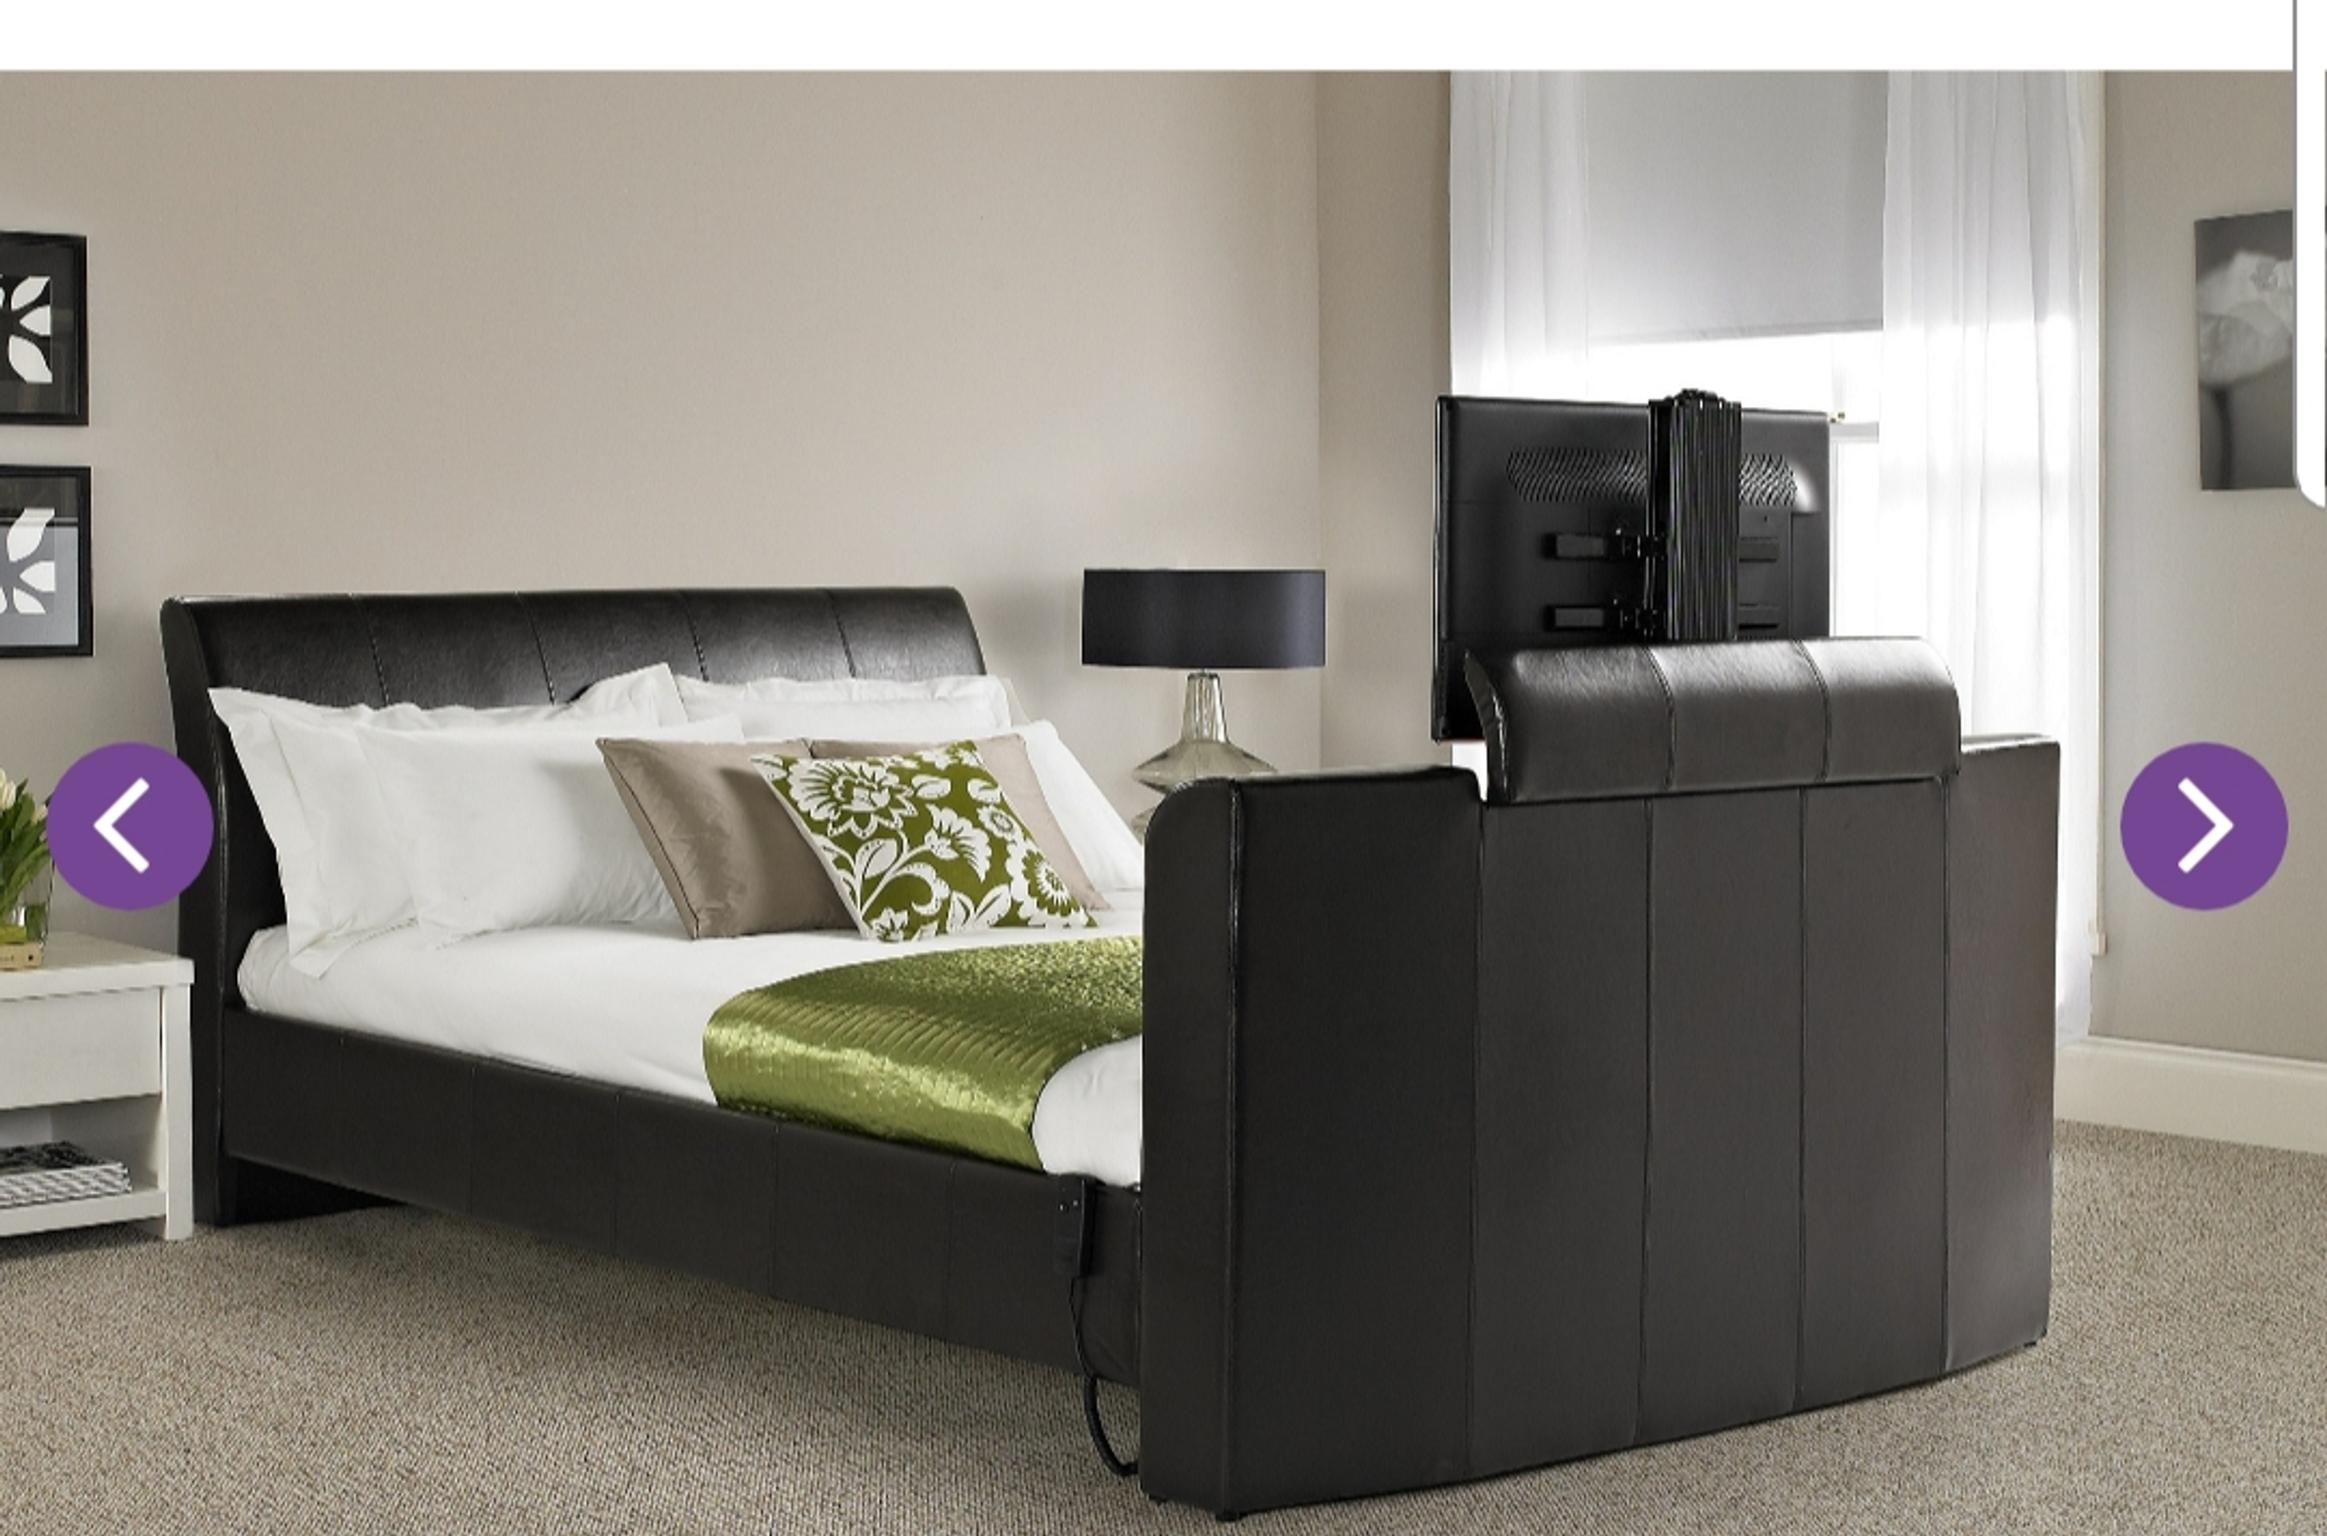 King Size Tv Bed King Size Tv Bed